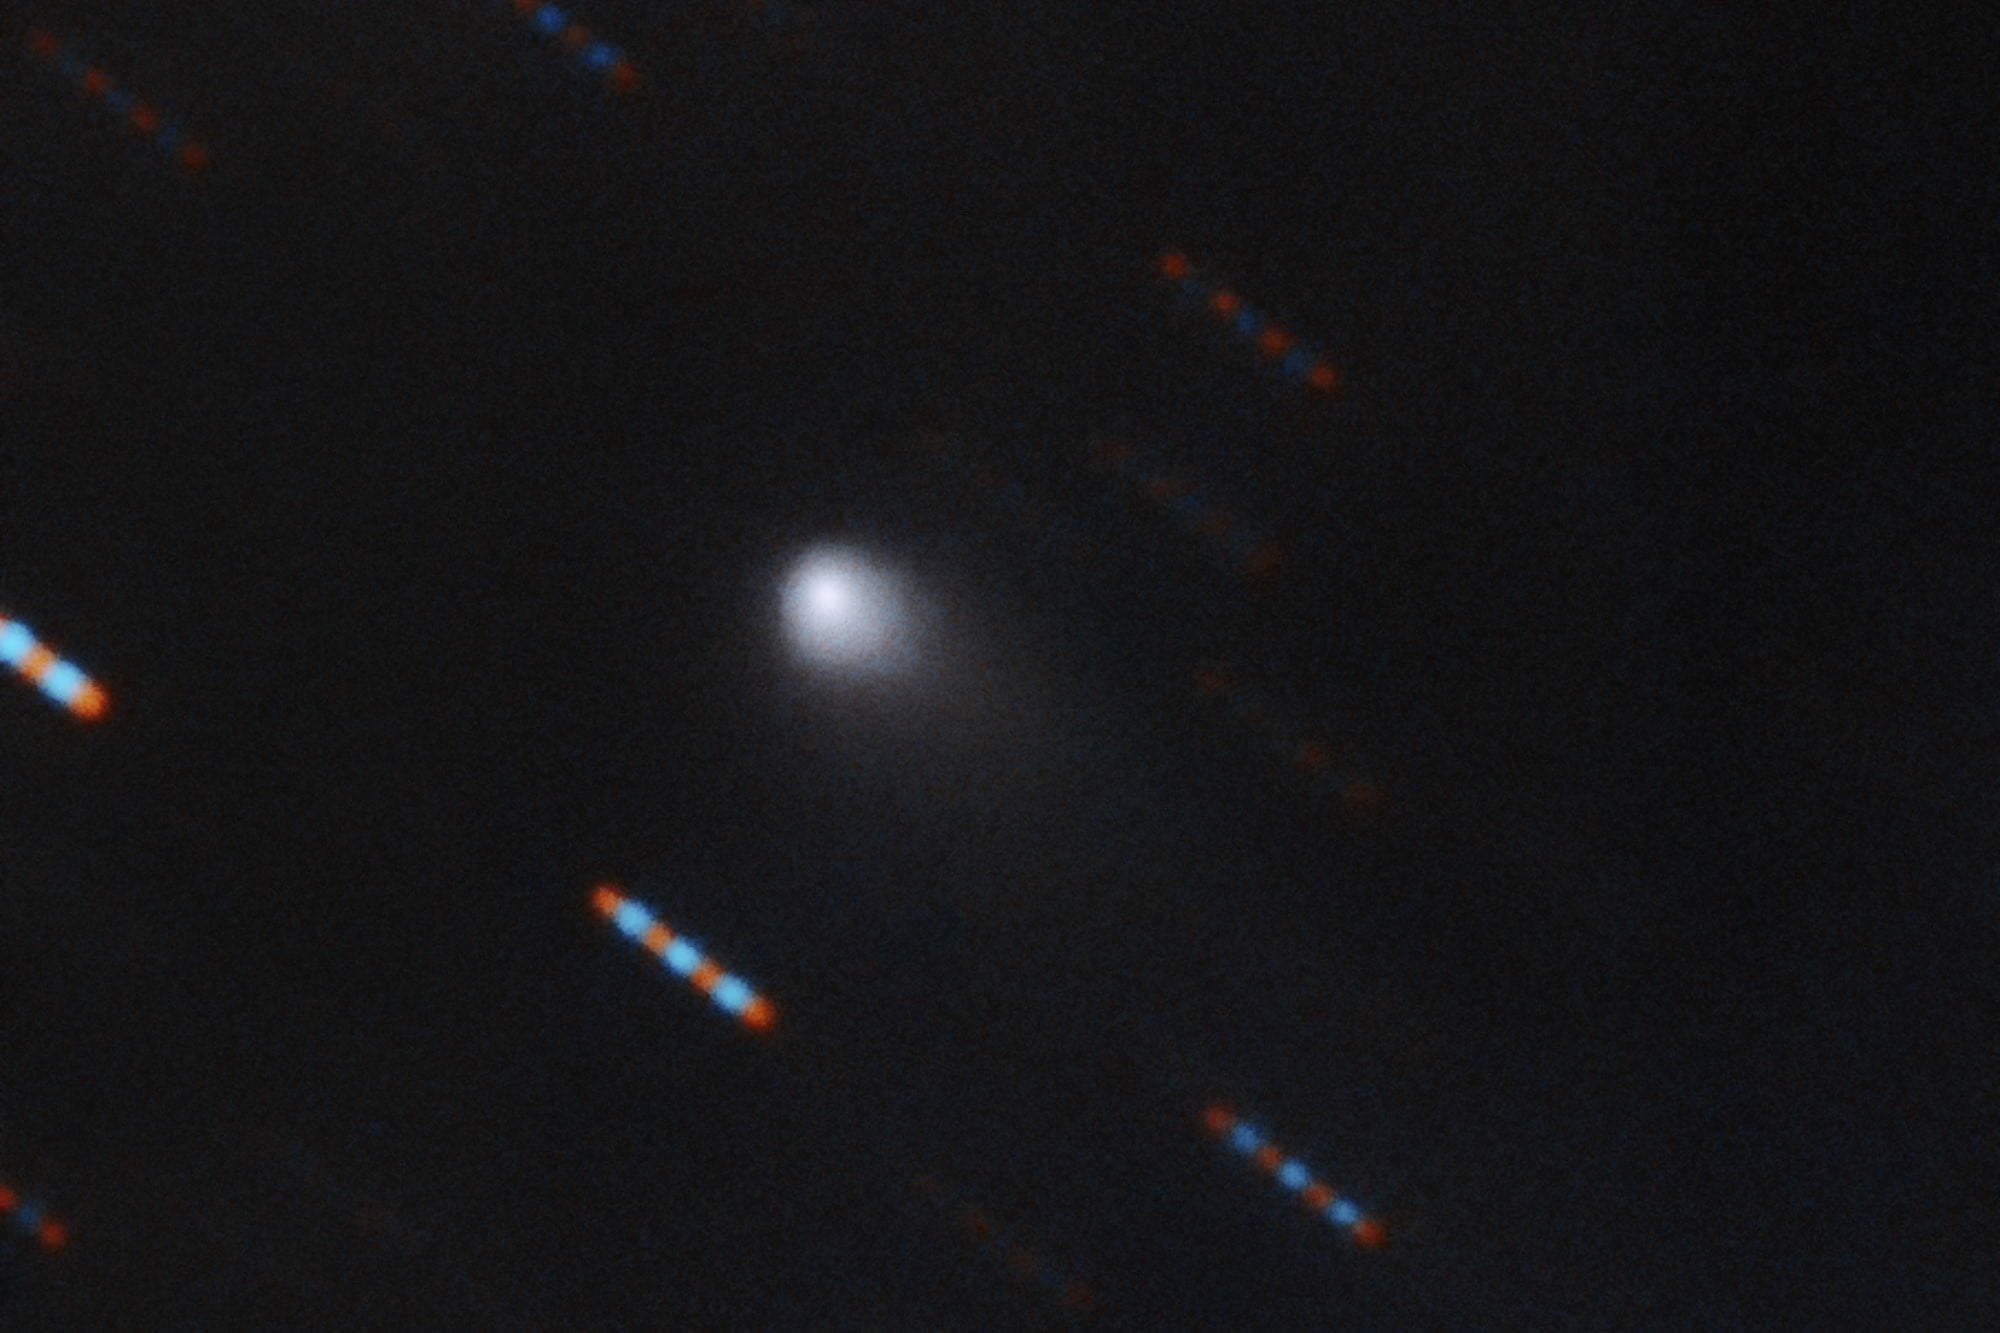 First images of the mysterious interstellar comet show some familiar features